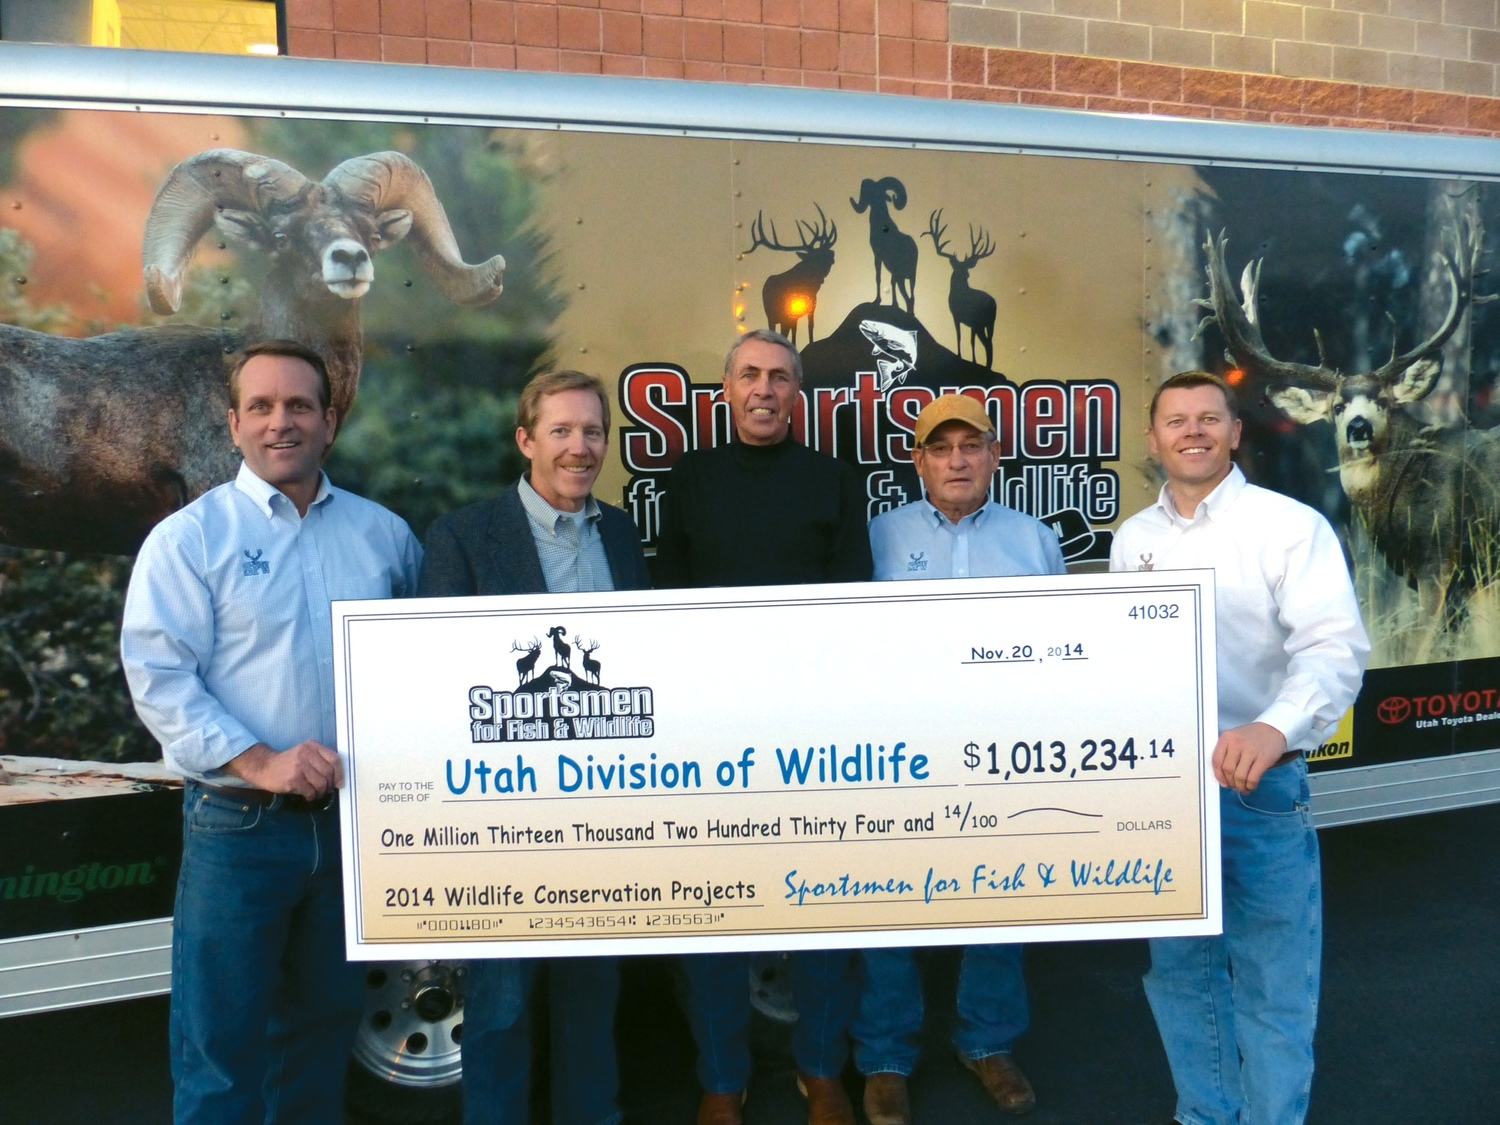 Sportsmen: America's great conservationists